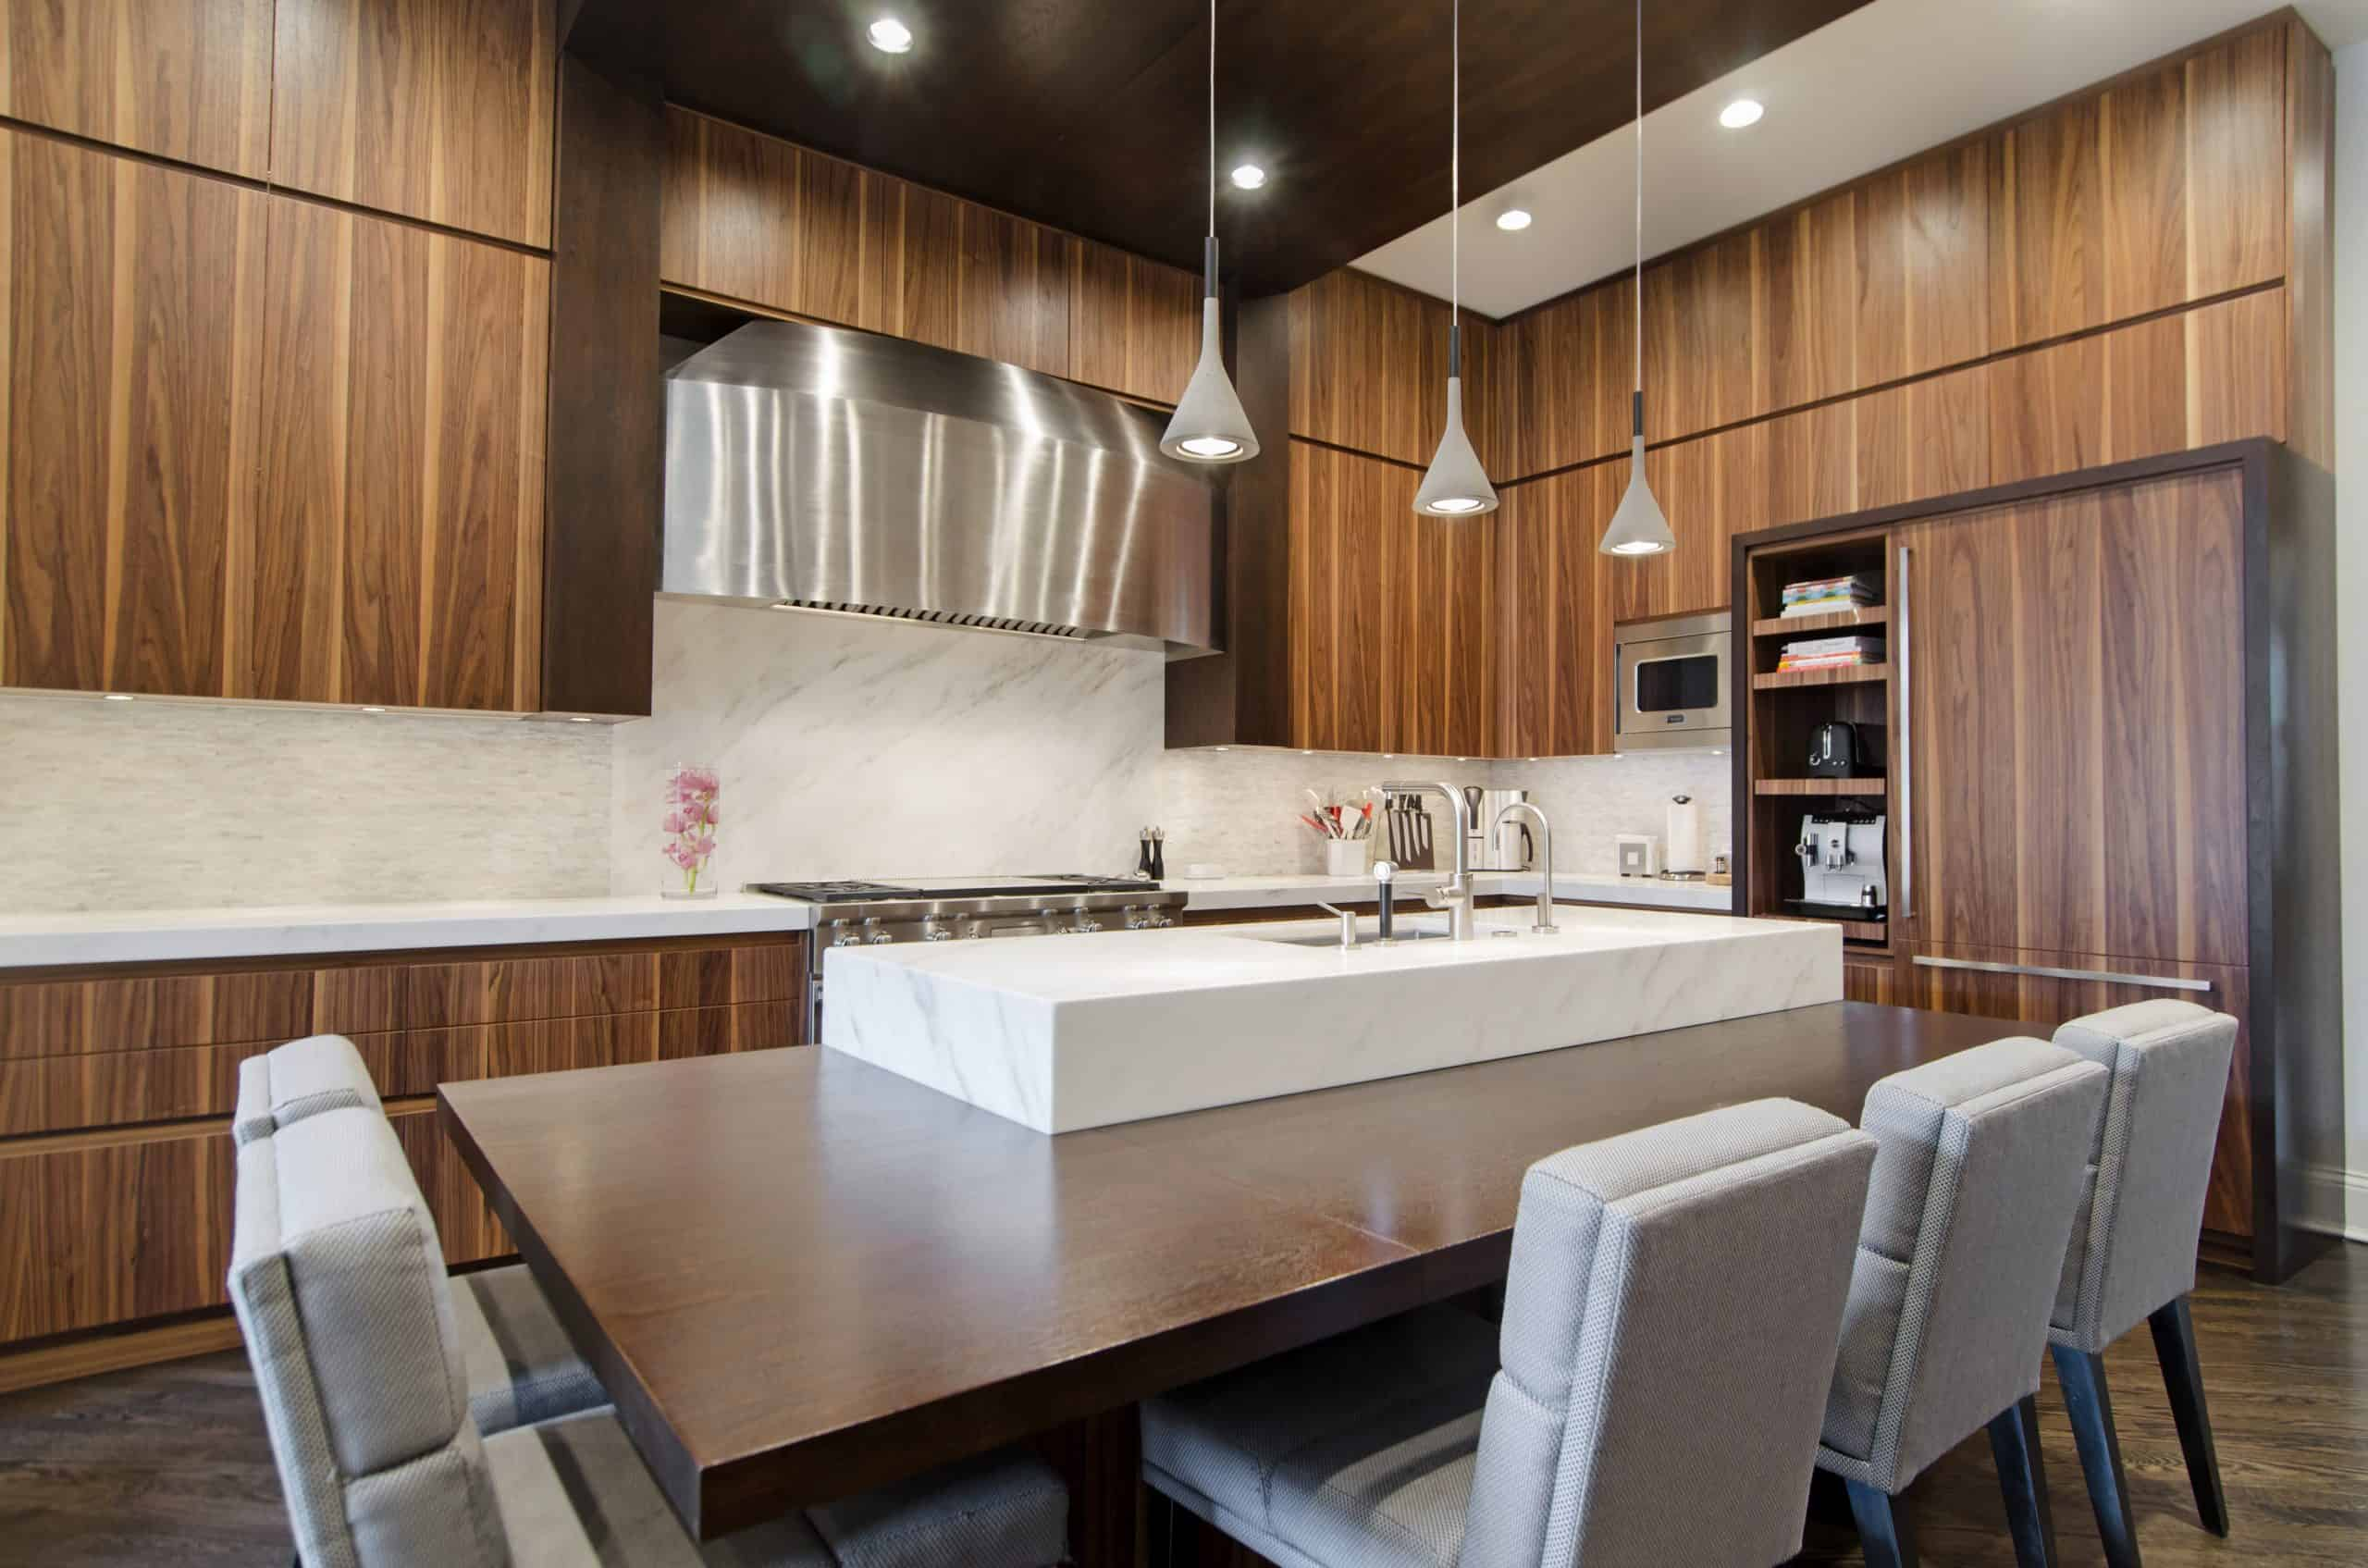 Walnut Kitchen Renovation in Pinecrest